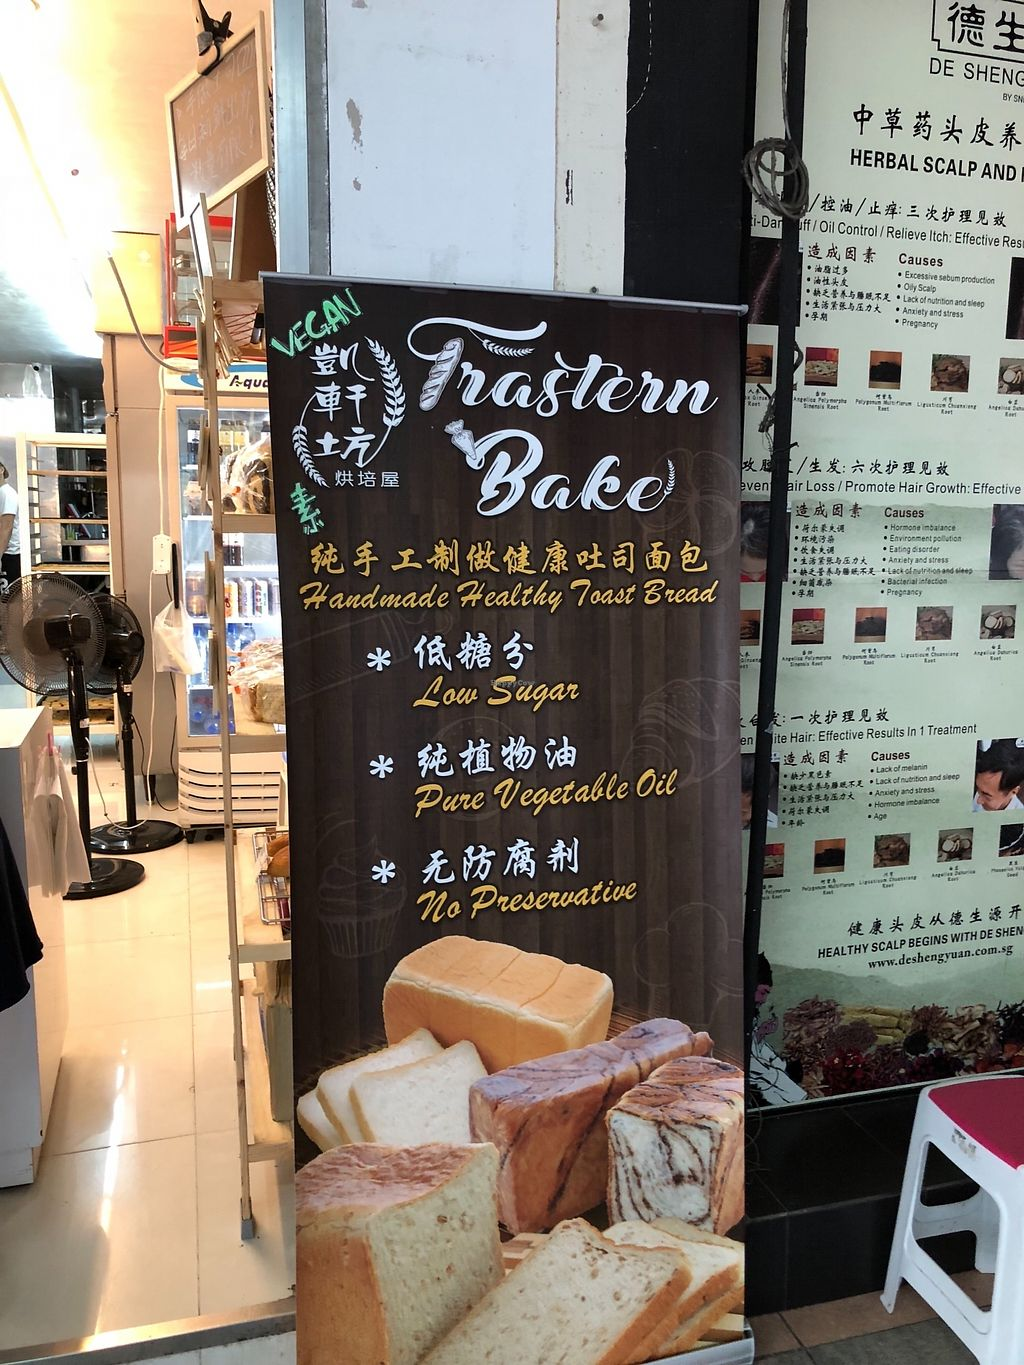 "Photo of Trastern Bake  by <a href=""/members/profile/CherylQuincy"">CherylQuincy</a> <br/>Vegan toasts  <br/> March 13, 2018  - <a href='/contact/abuse/image/114375/369999'>Report</a>"